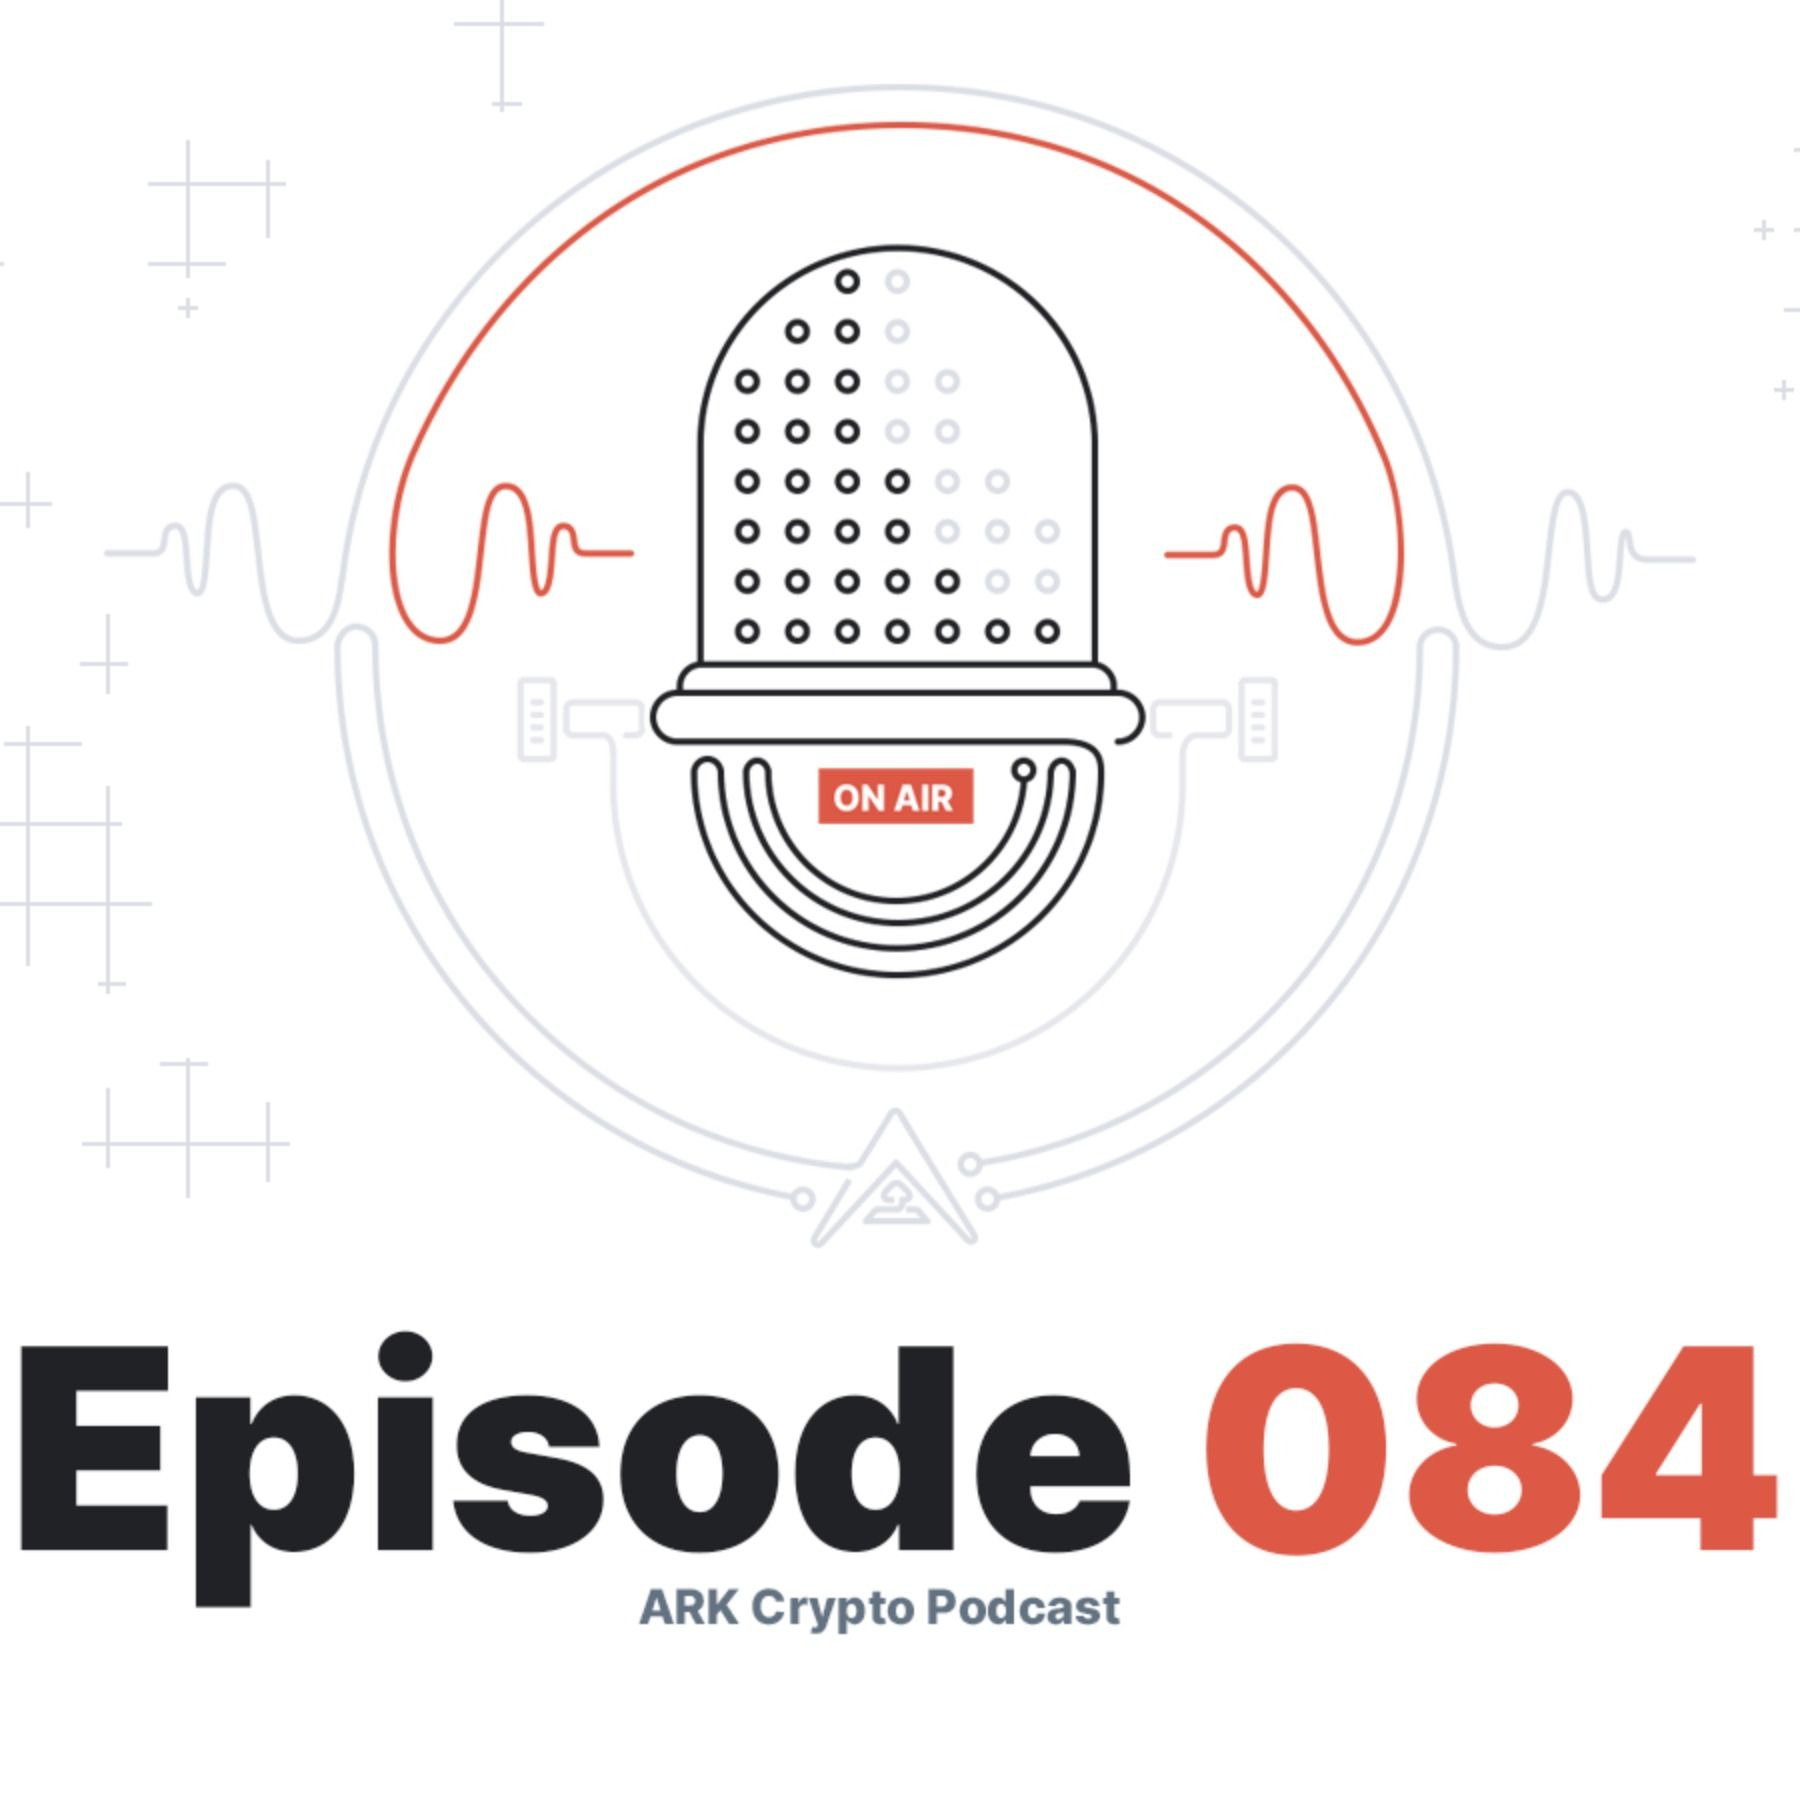 Reacting to ARK Descriptions on Crypto Directory Websites (Part 2) - ARK Crypto Podcast #084